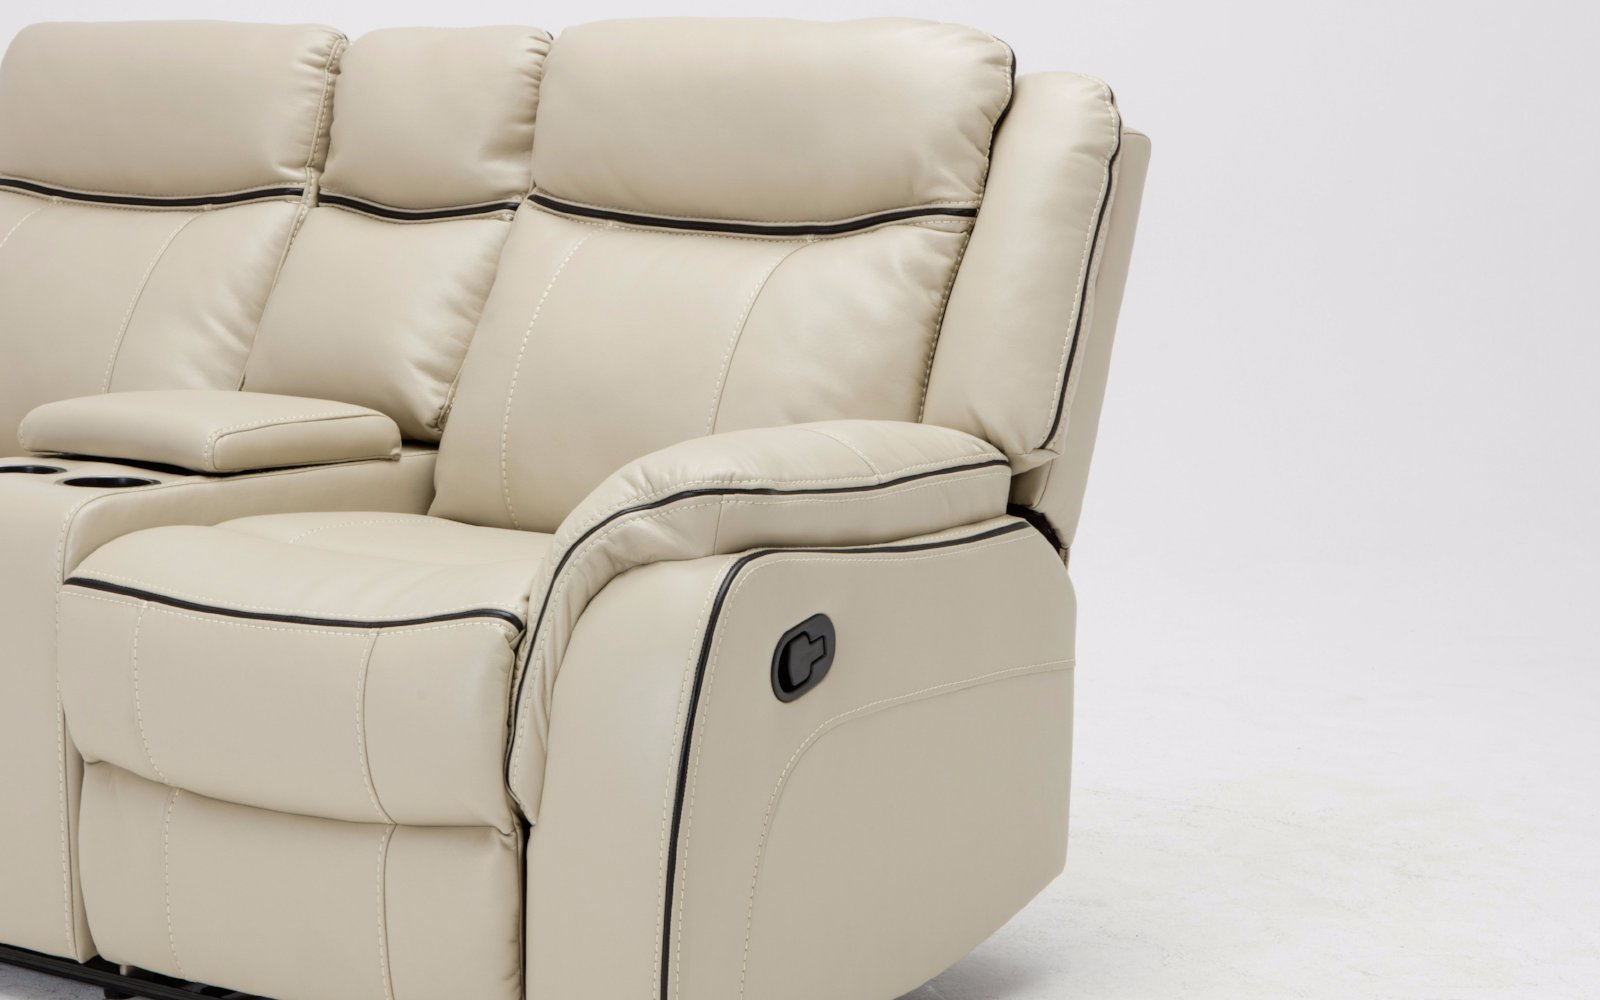 Paul Classic Bonded Leather Recliner Sectional & Paul Classic Bonded Leather Recliner Sectional | Sofamania.com islam-shia.org